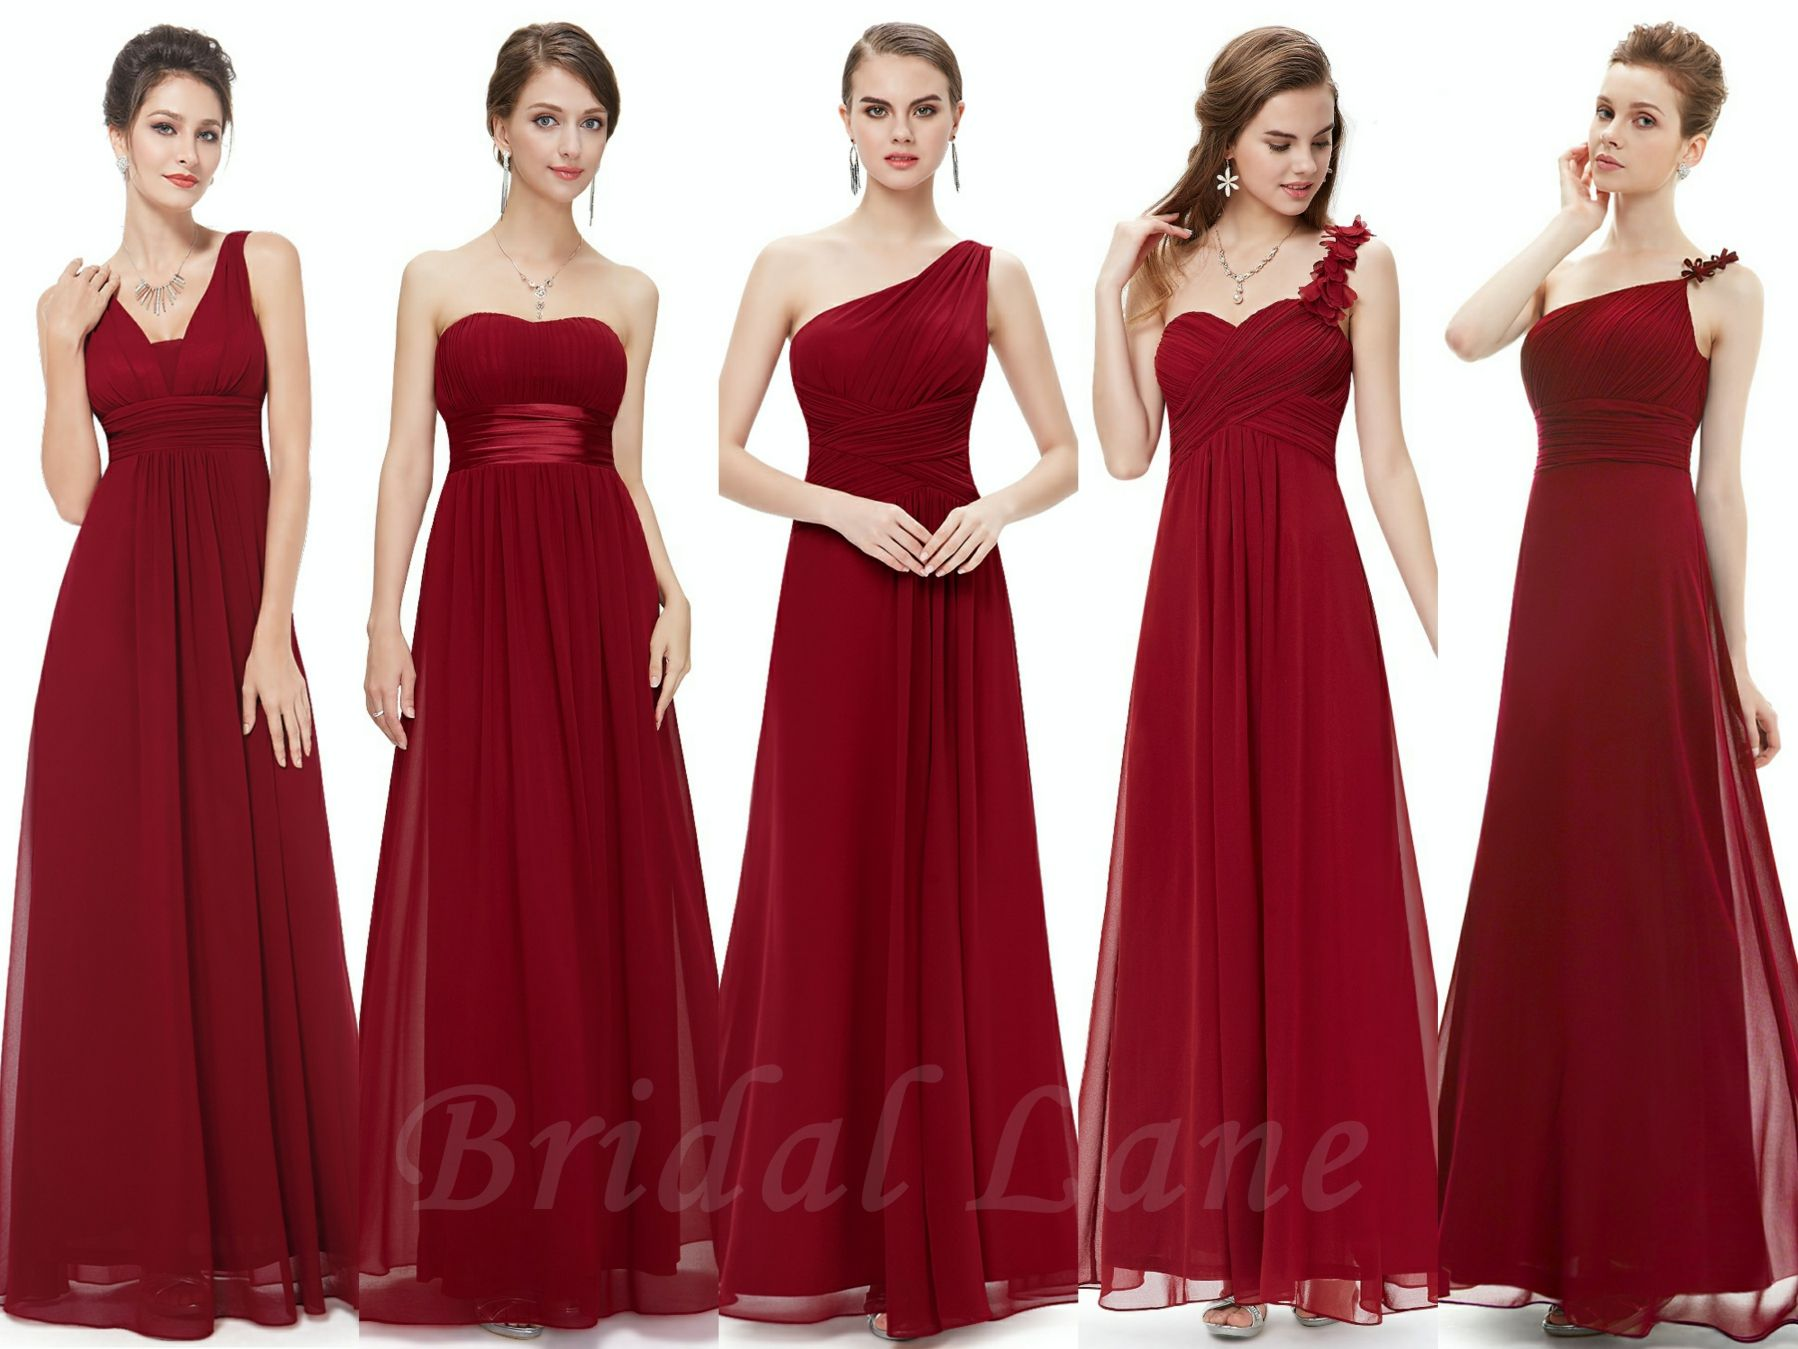 Burgundy / wine red bridesmaid dresses - Bridal Lane, Cape Town ...